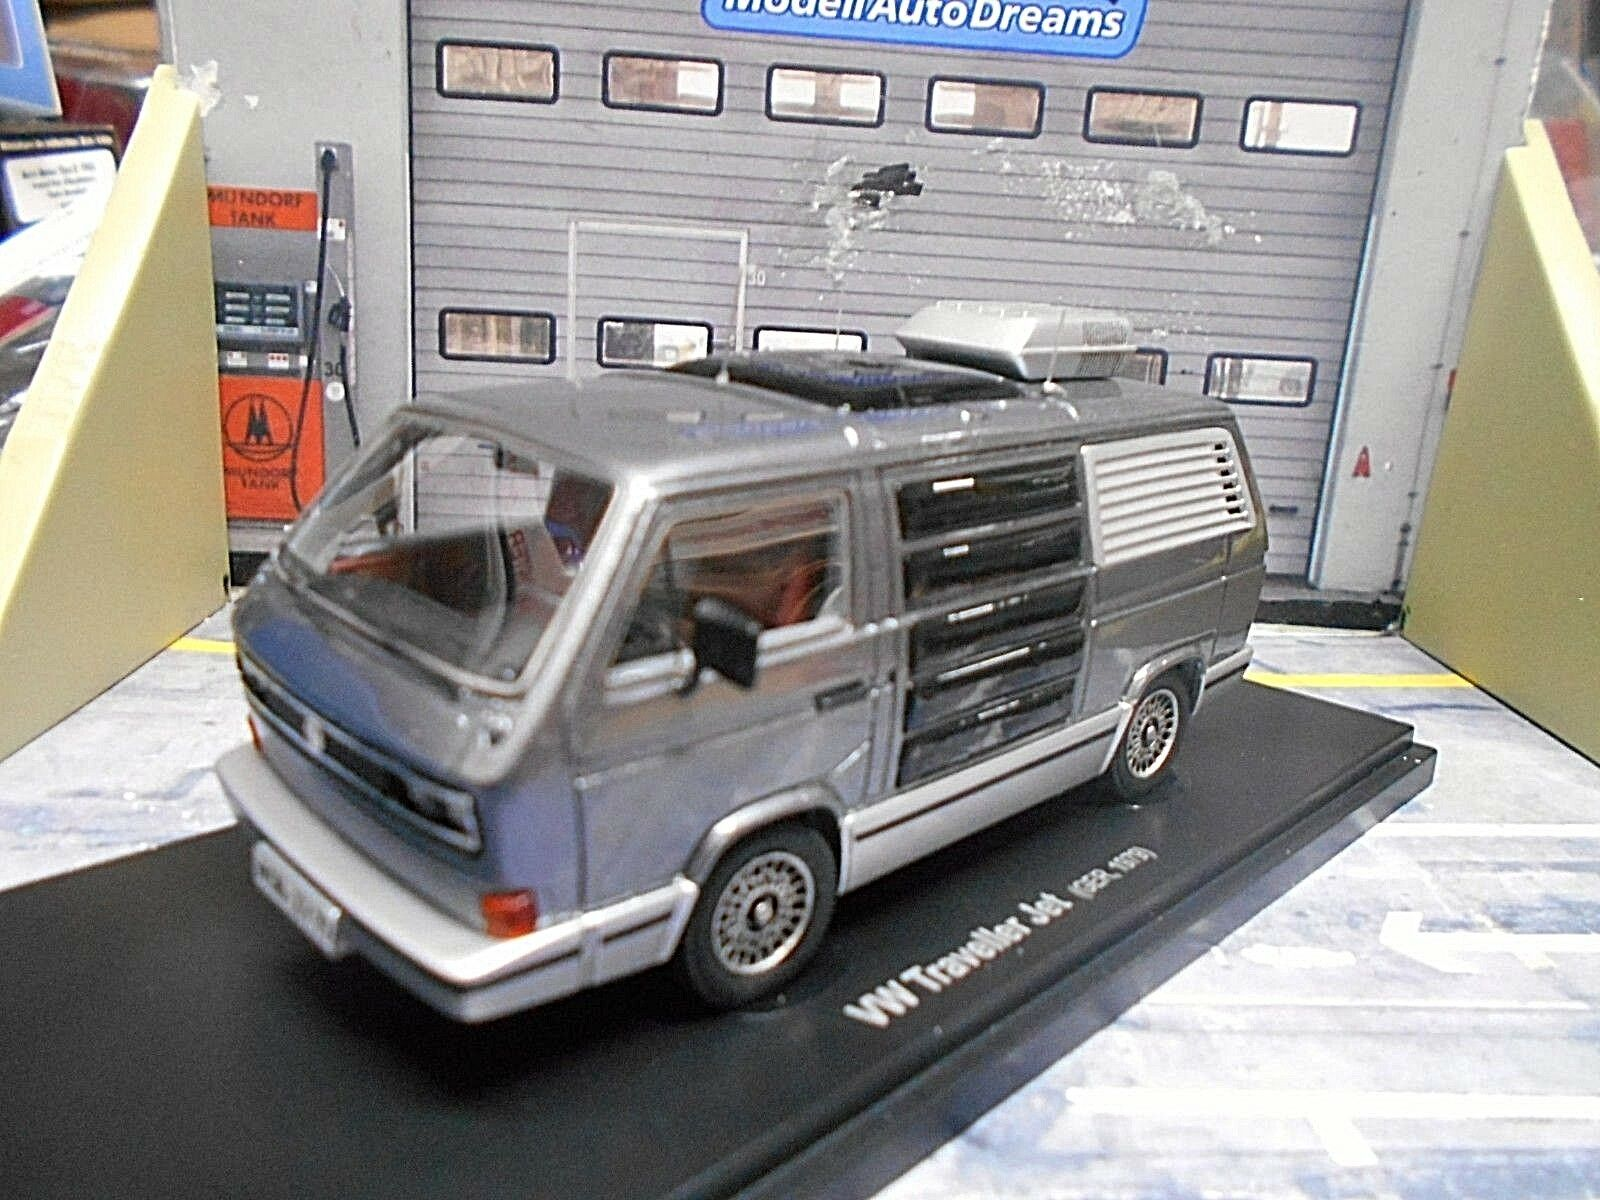 VW VOLKSWAGEN t3 bus TRAVELLER JET CAMPER CAMPEGGIO 1979 resin HQ autocult 1 43